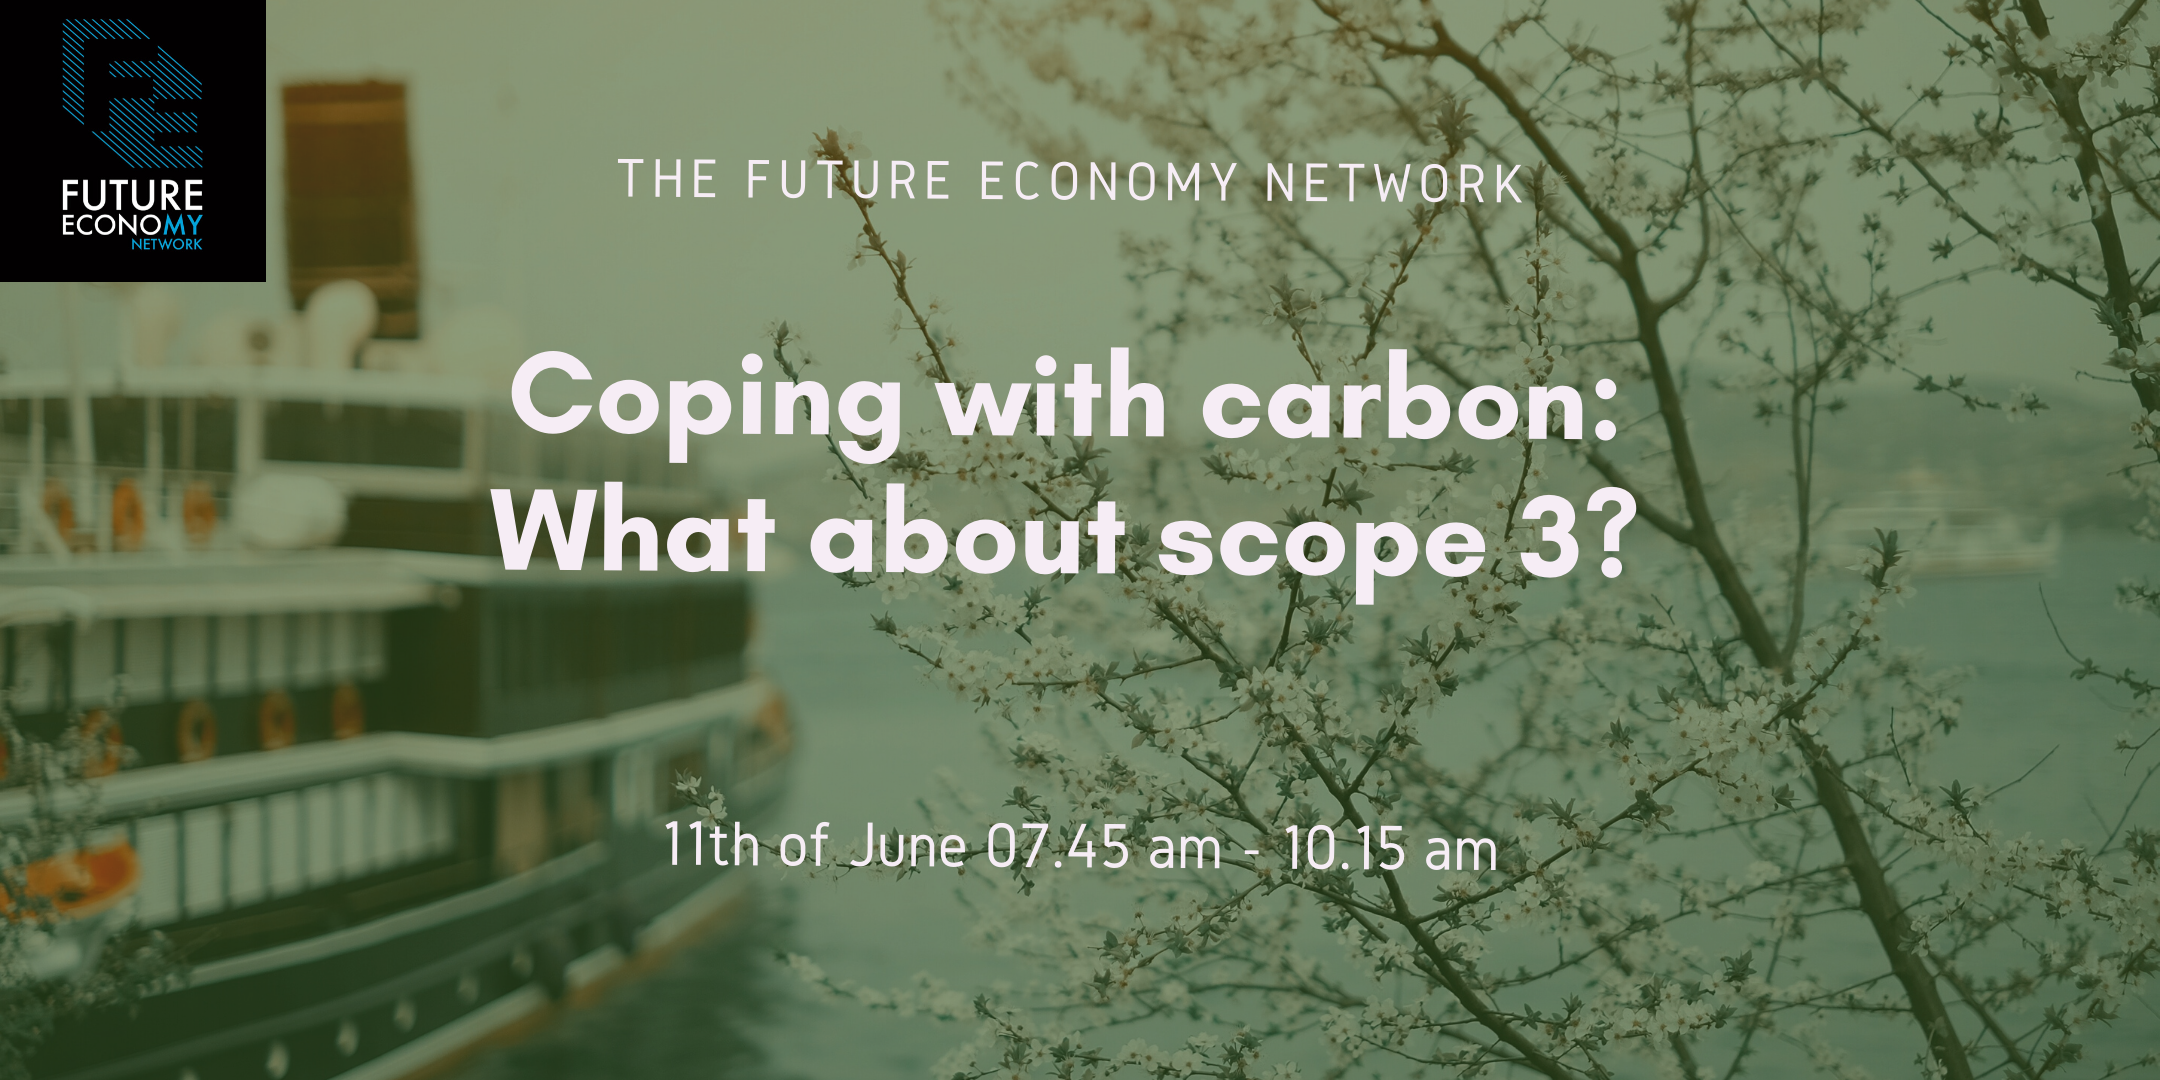 Coping with carbon: What about scope 3?